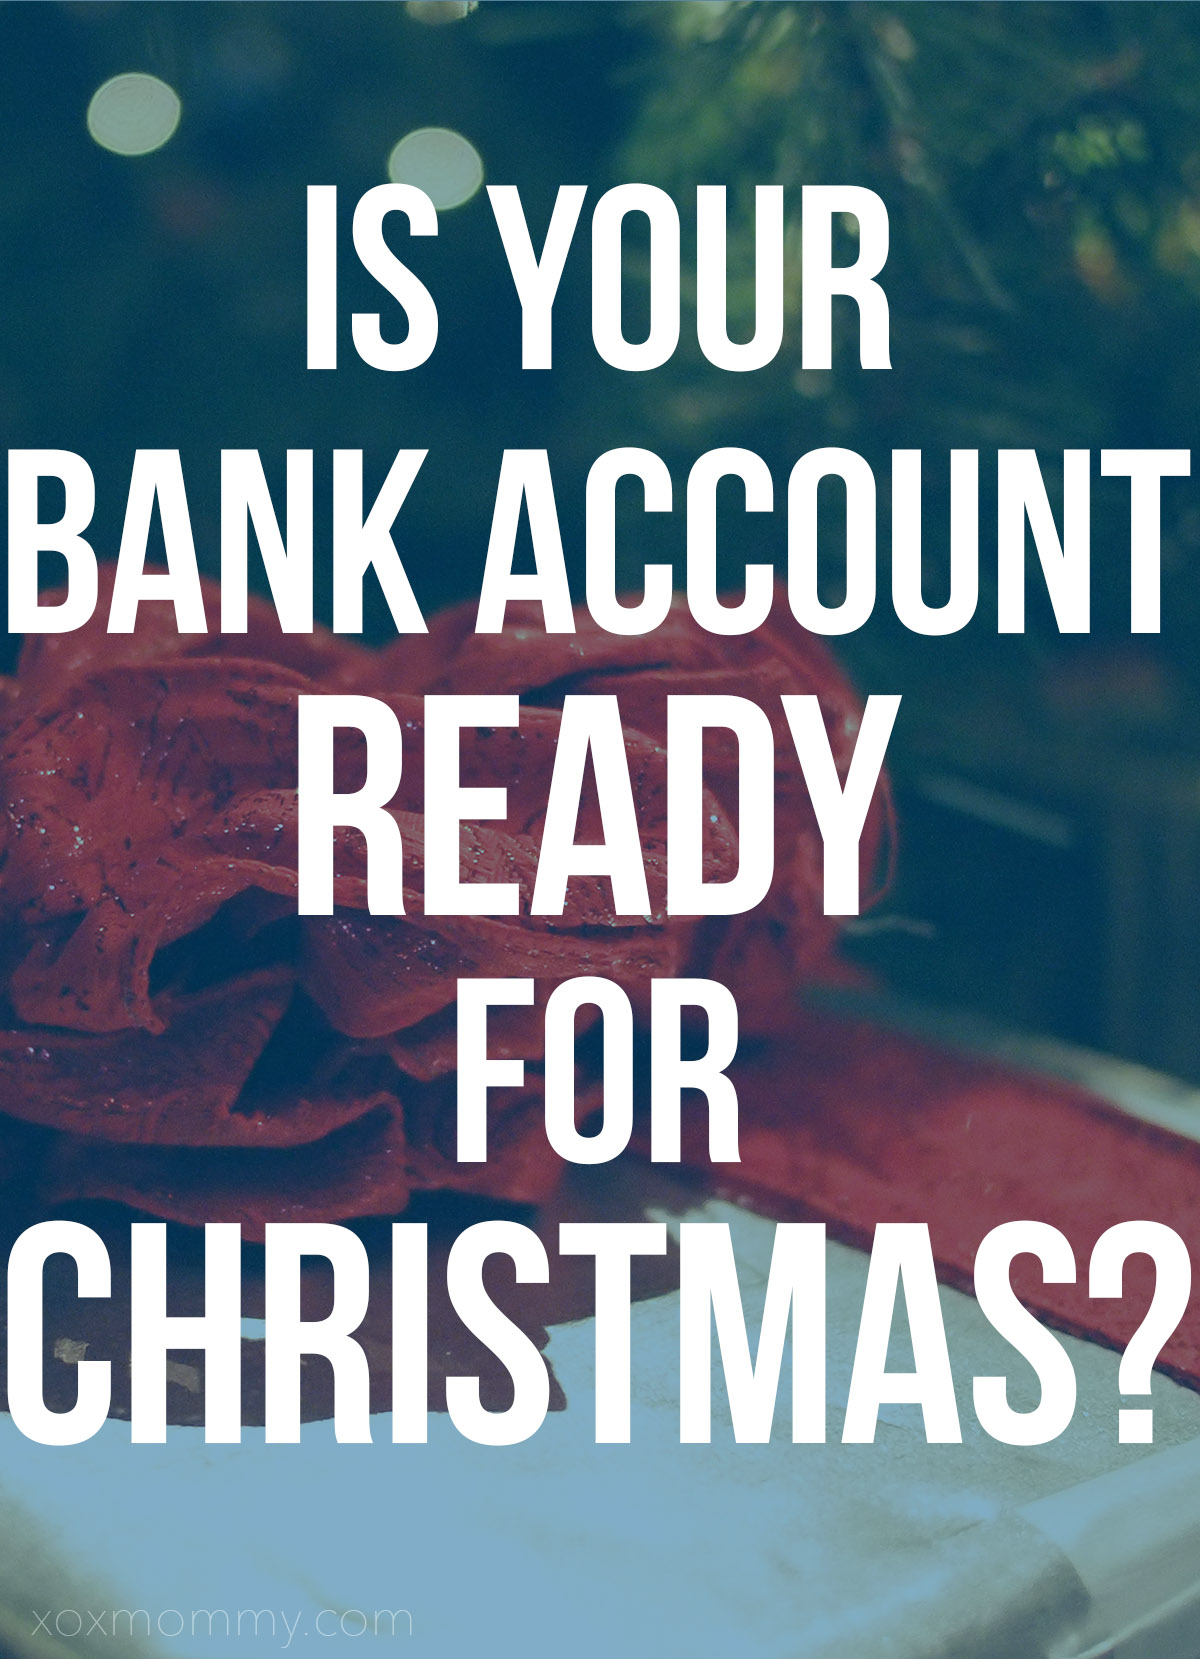 Is Your Bank Account Ready For Christmas?